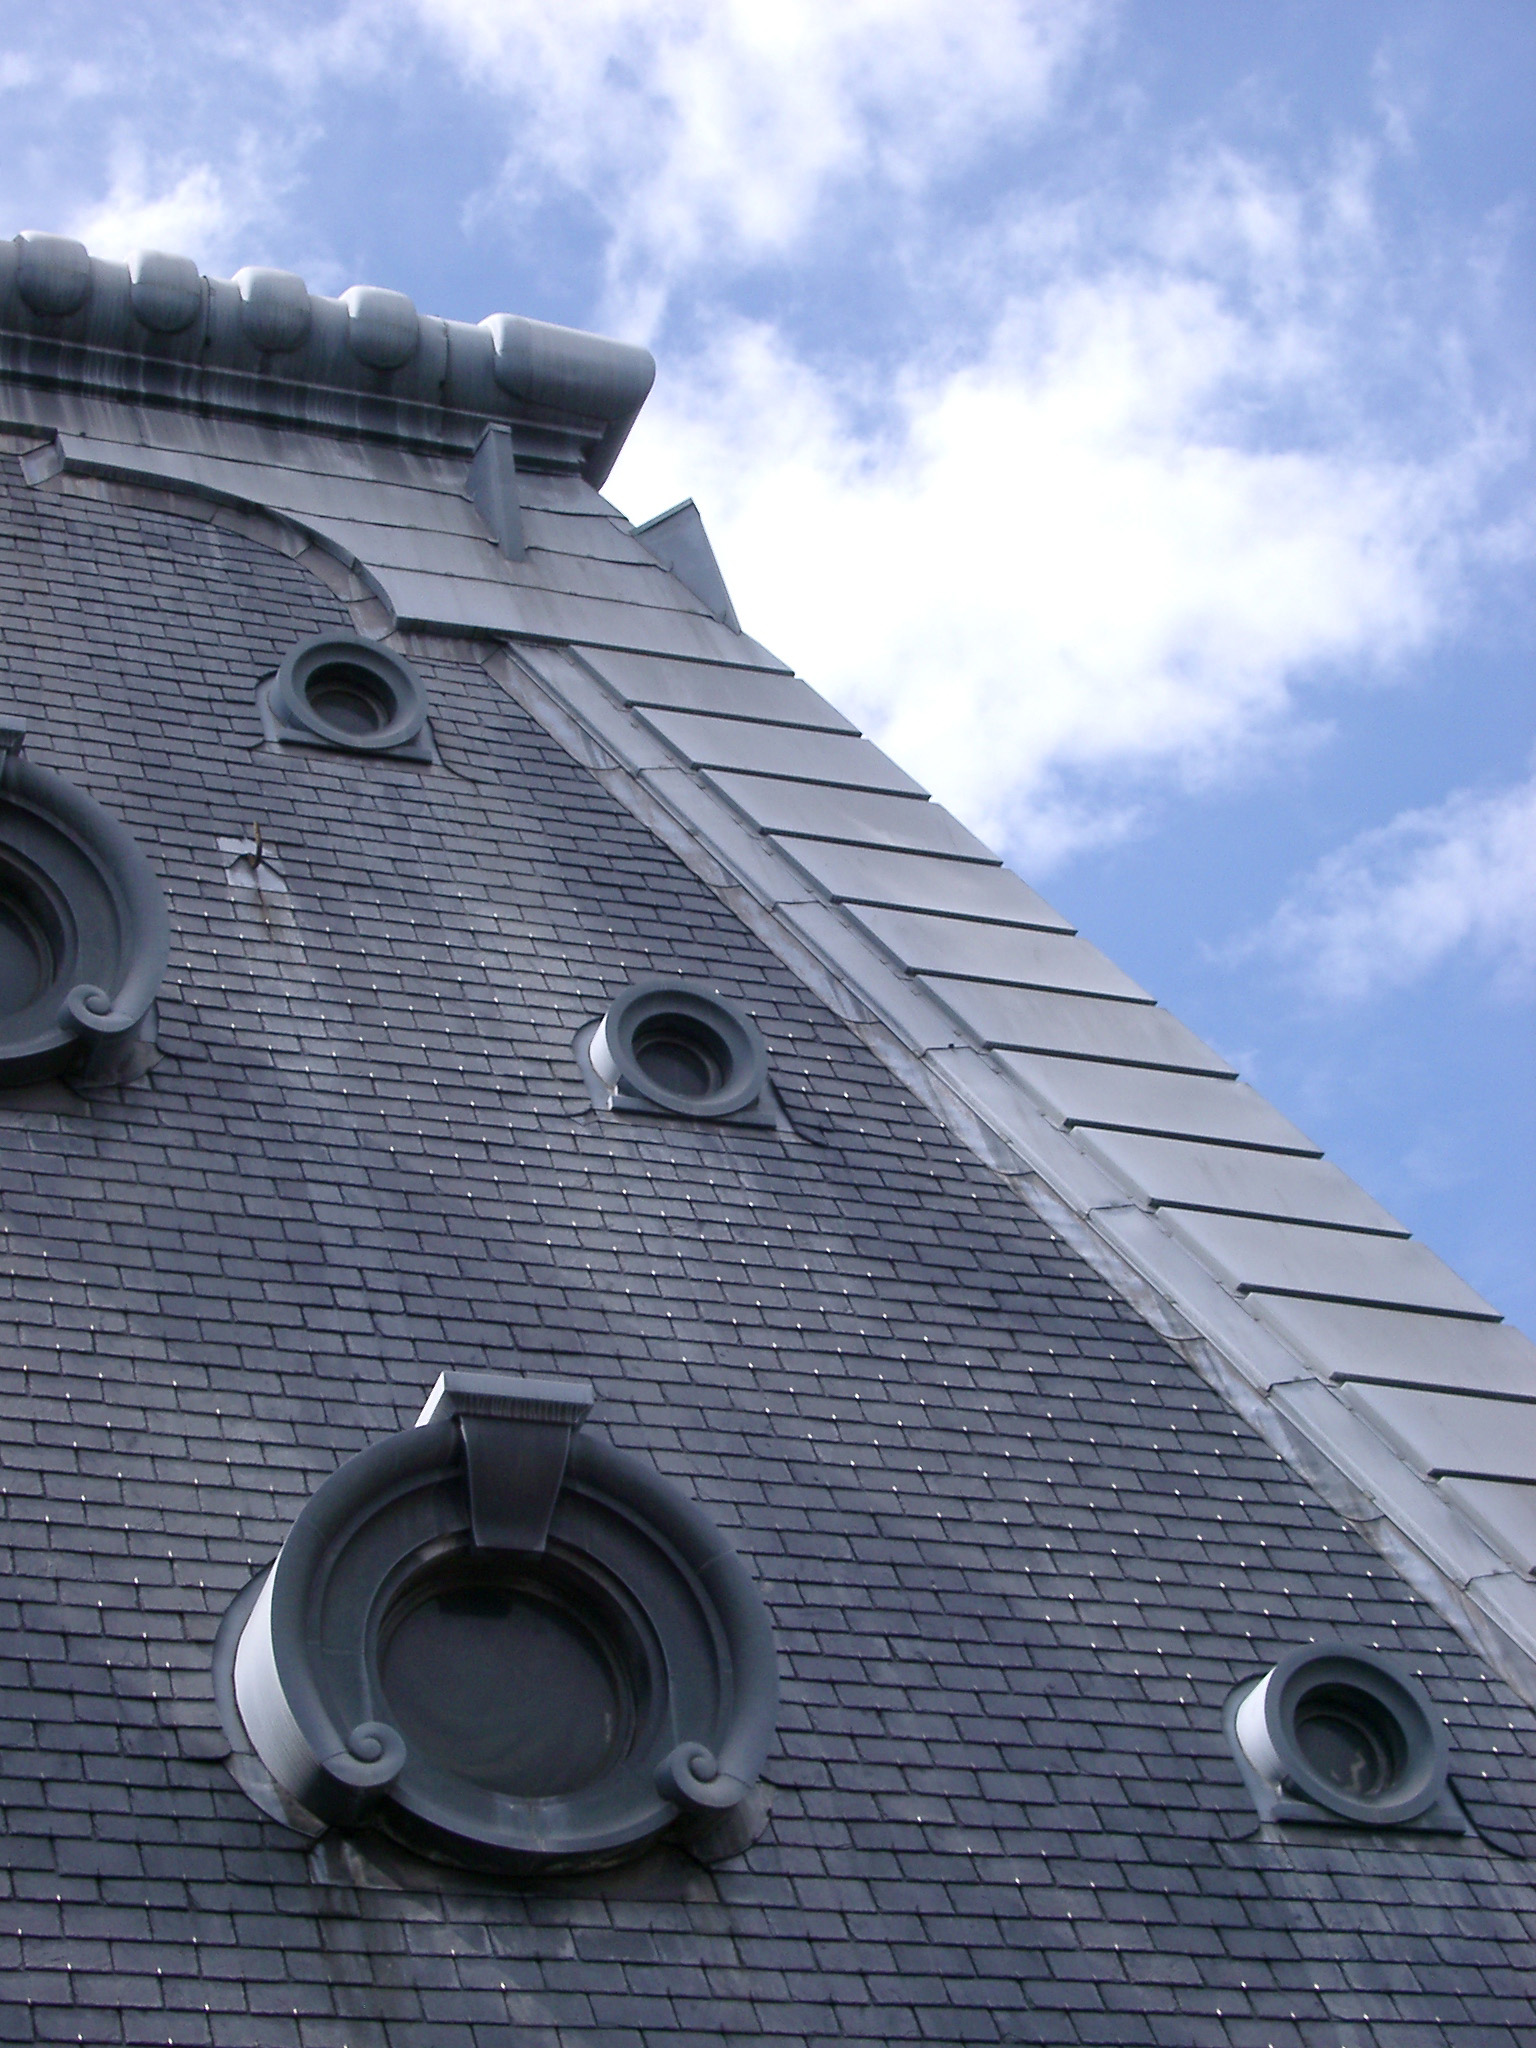 Close up of French Roof Details aginst Light Blue and White Sky Background